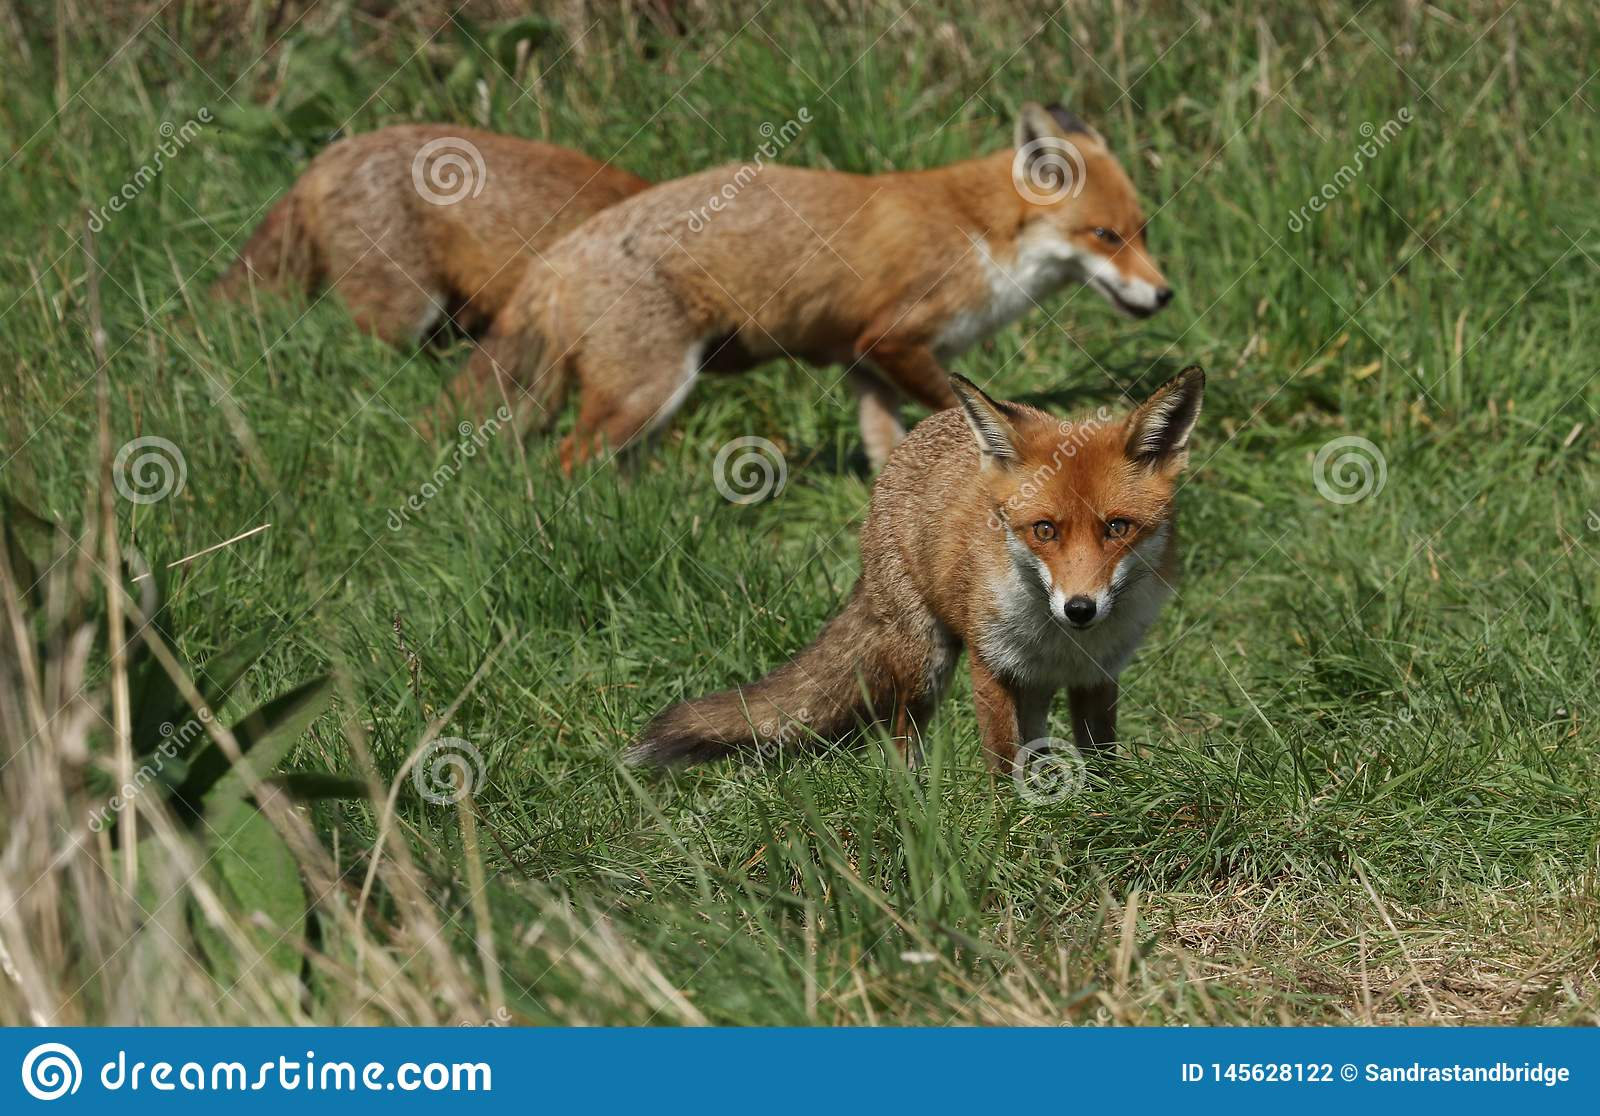 Three magnificent wild Red Fox Vulpes vulpes hunting for food to eat in the long grass.